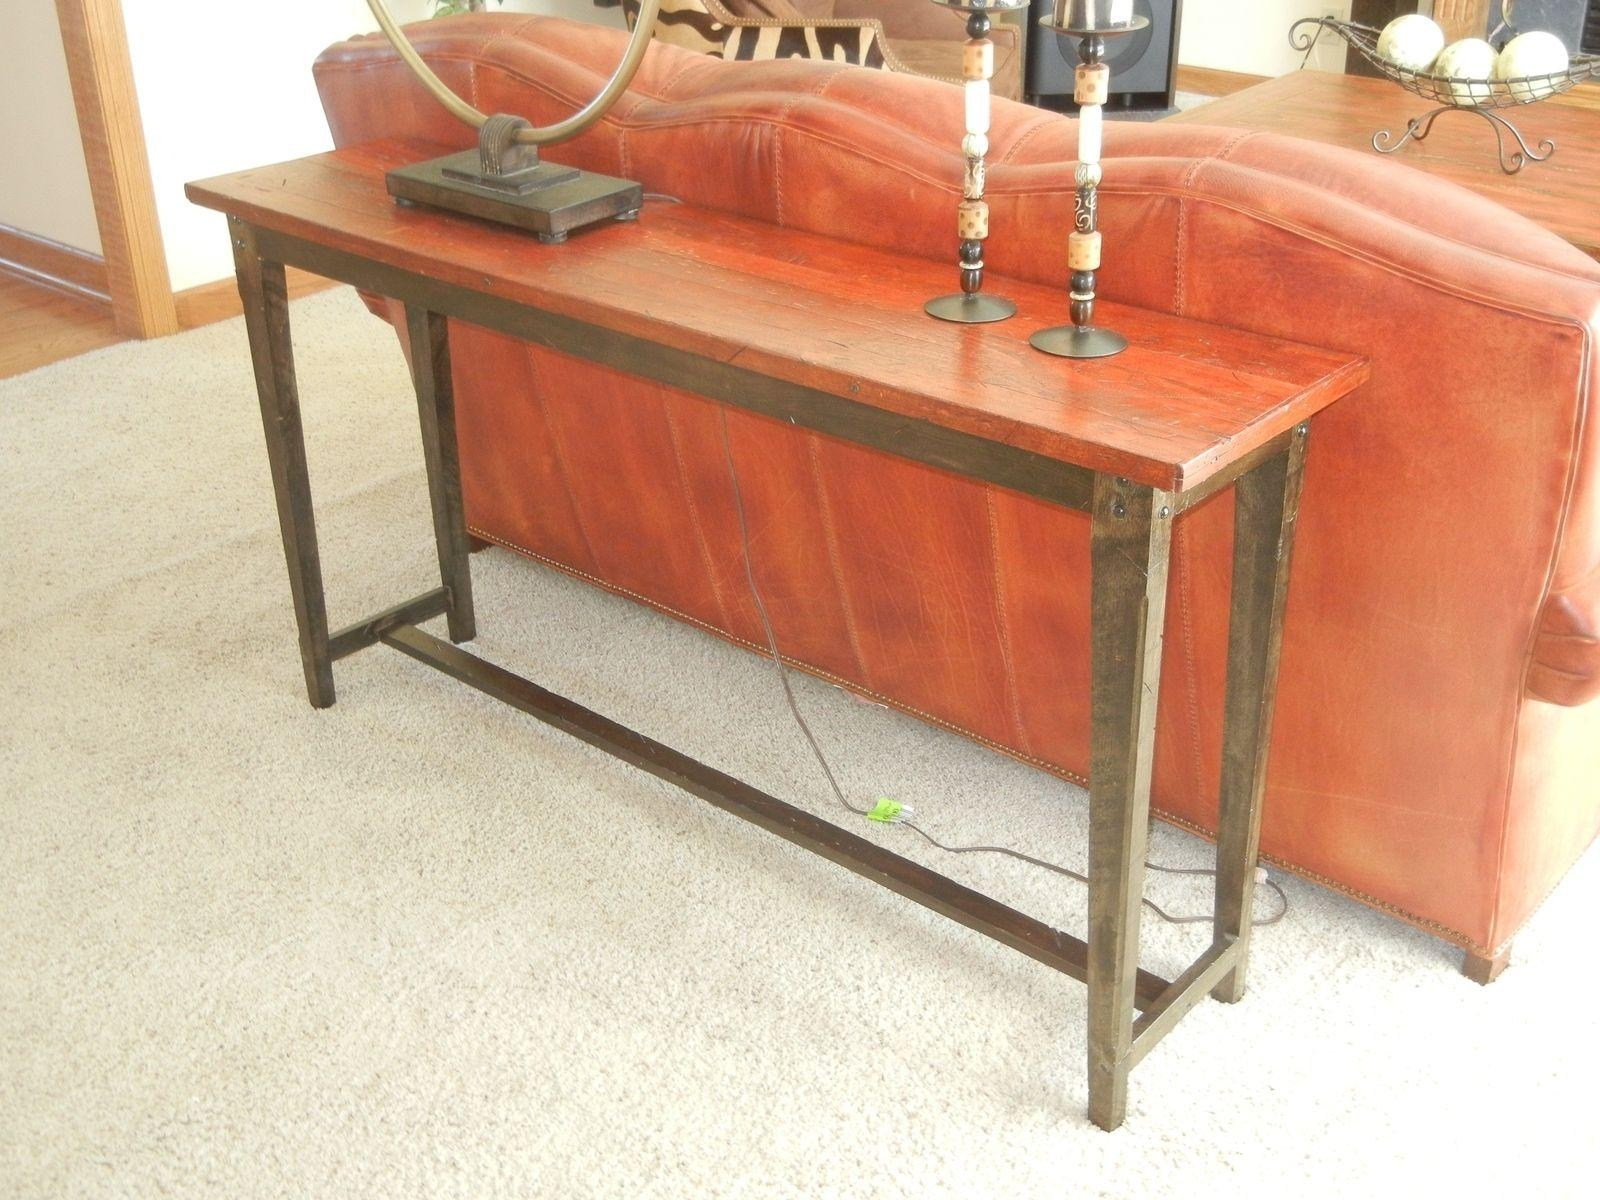 Hand Crafted Reclaimed Barnwood Sofa Tableecho Peak Design Throughout Barnwood Sofa Tables (View 12 of 20)